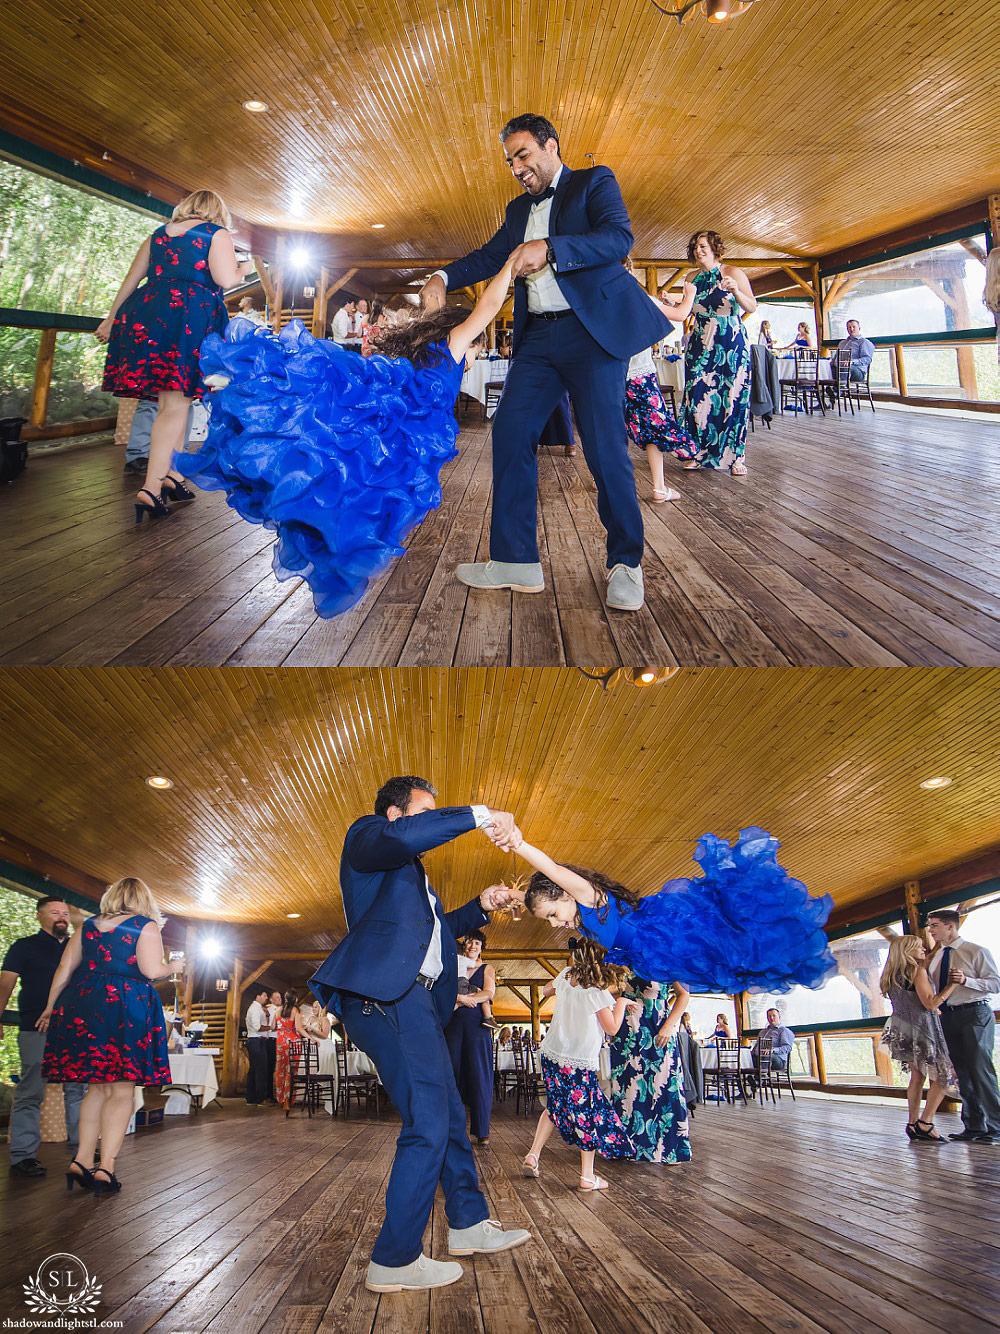 grand lake lodge wedding photography colorado